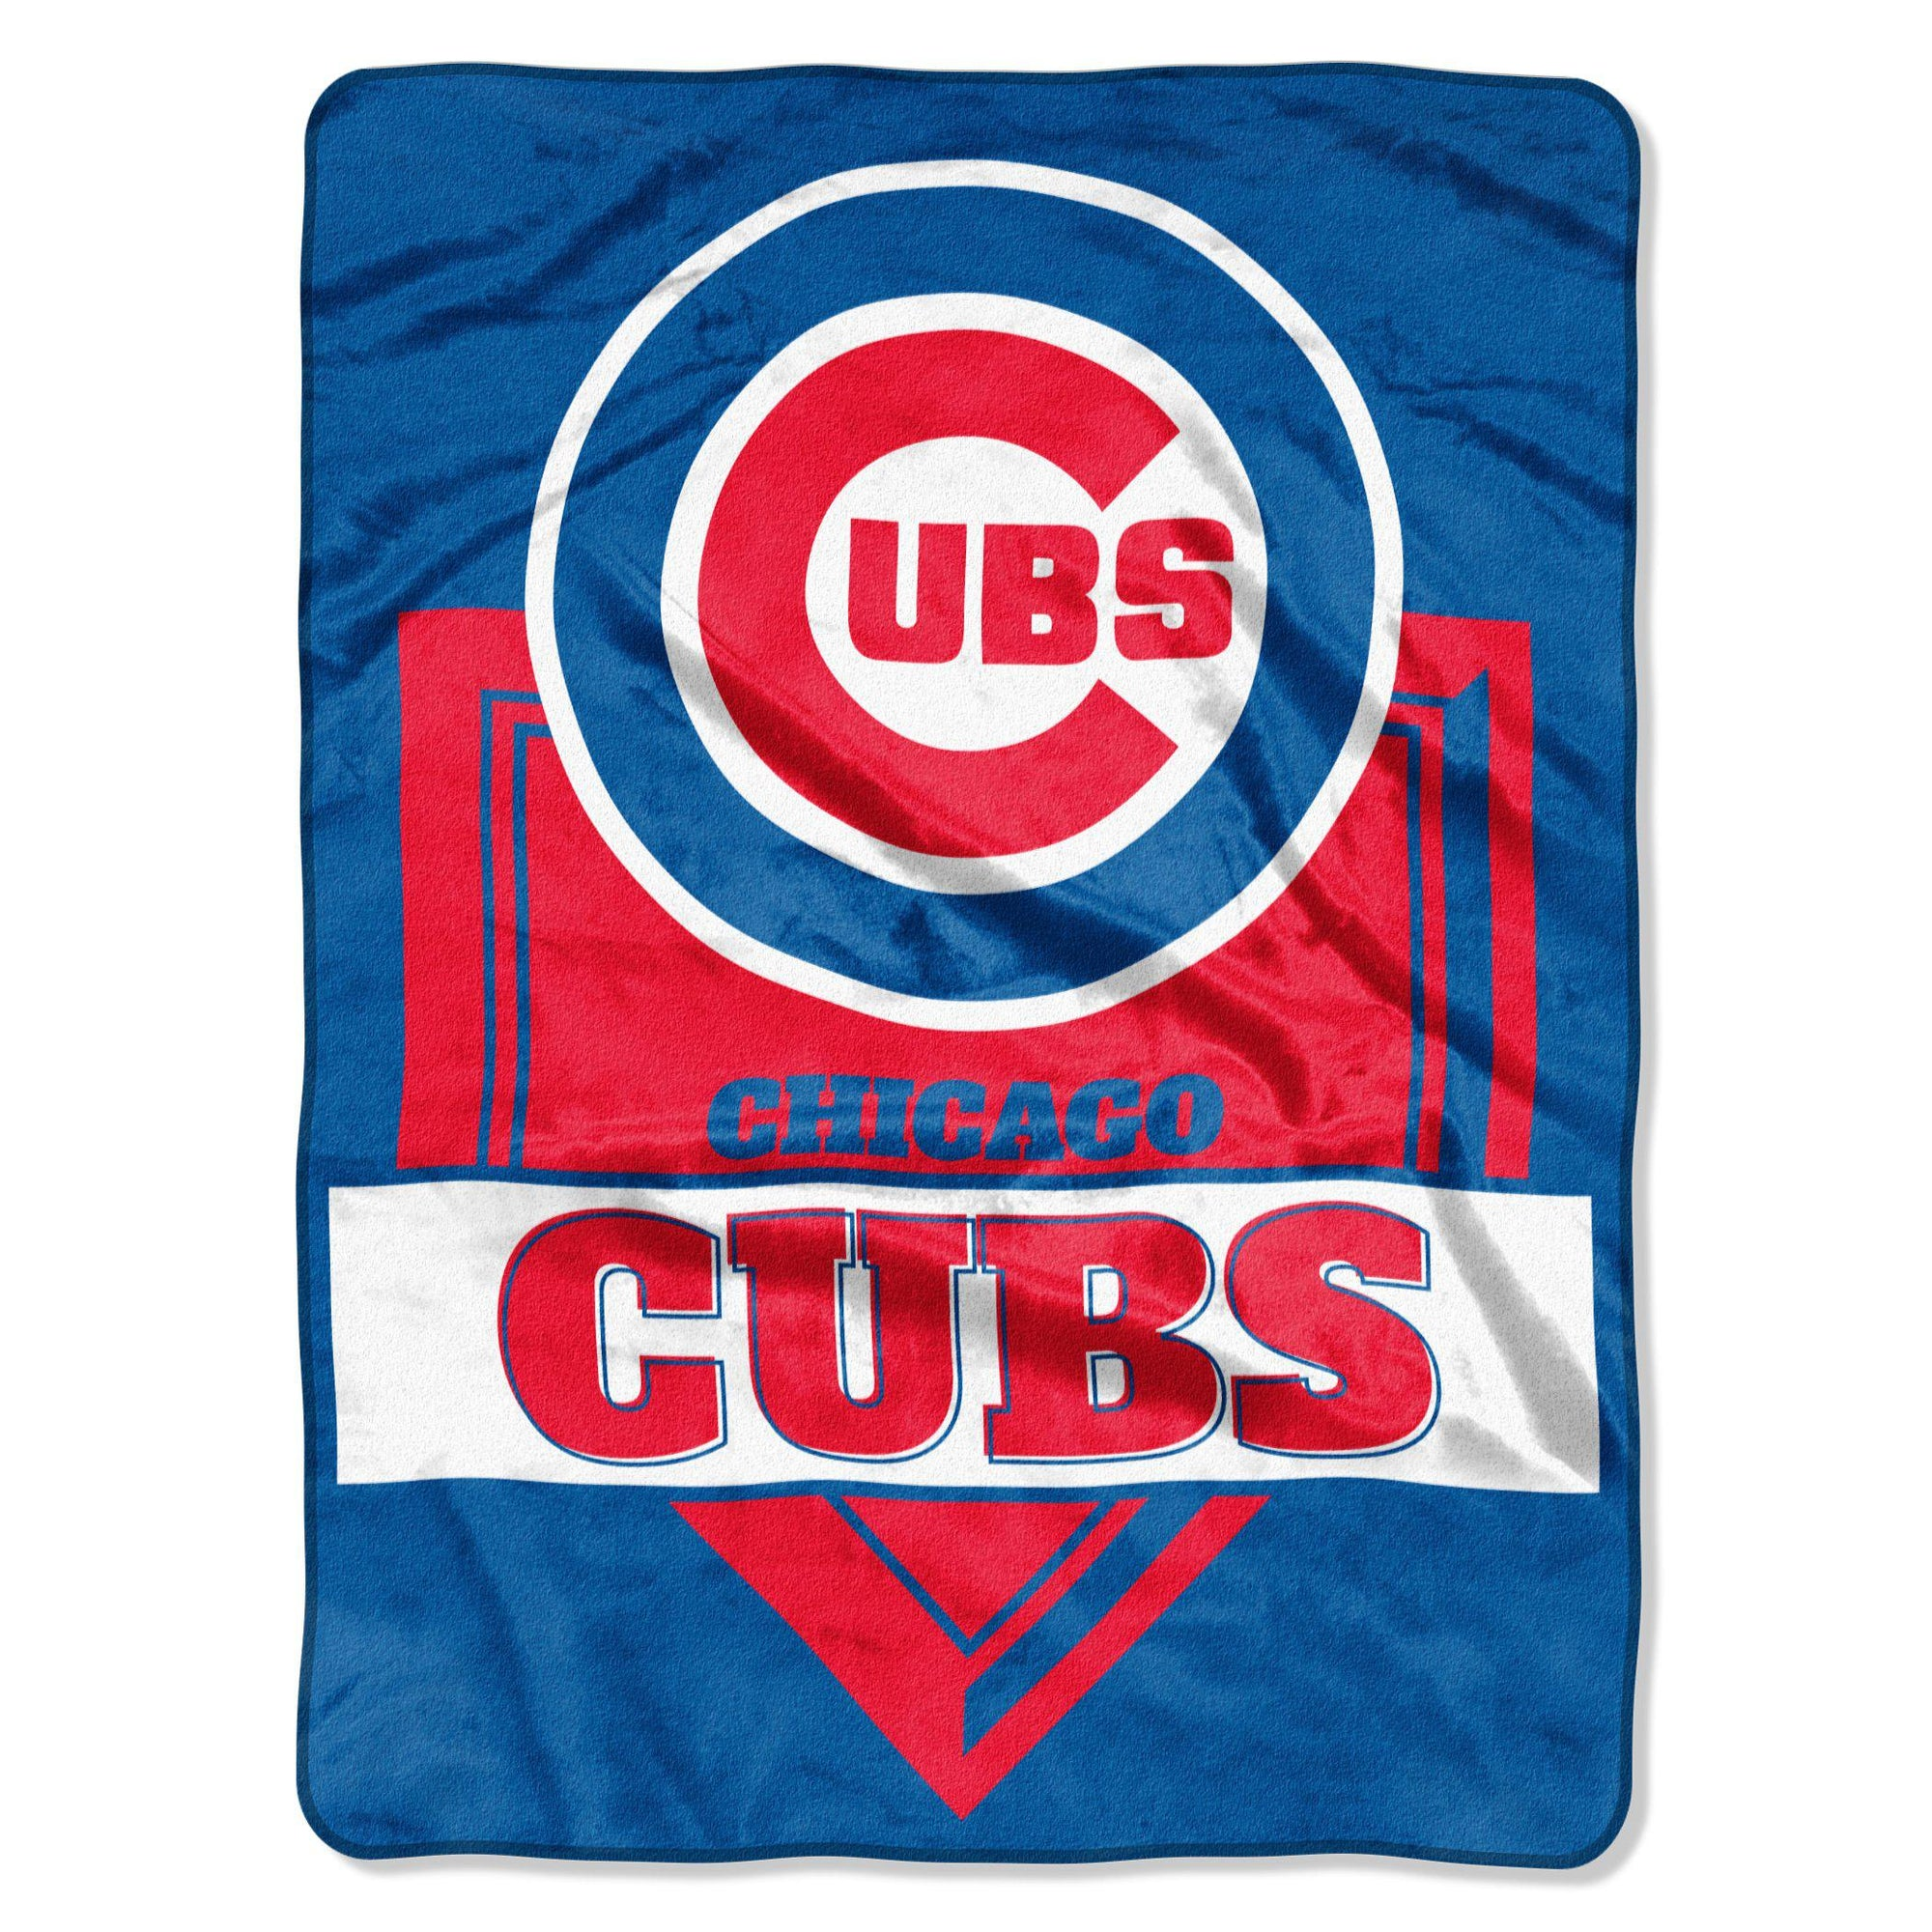 Chicago Cubs Fleece Blanket - Home Plate-Blanket-Northwest-Top Notch Gift Shop